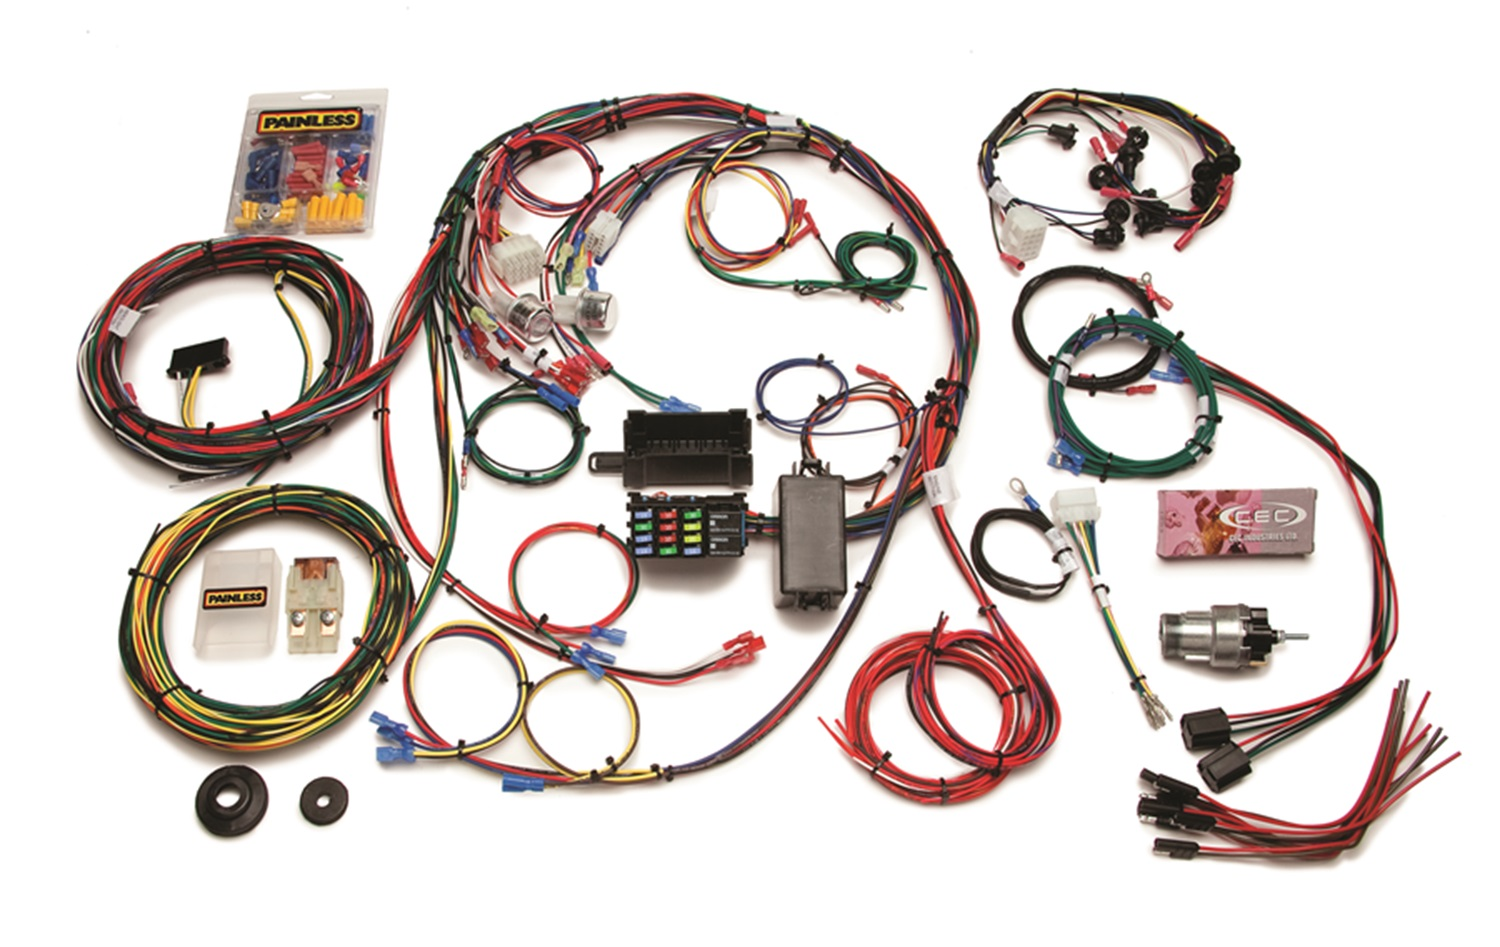 20121 painless 20121 23 circuit direct fit mustang chassis harness pi